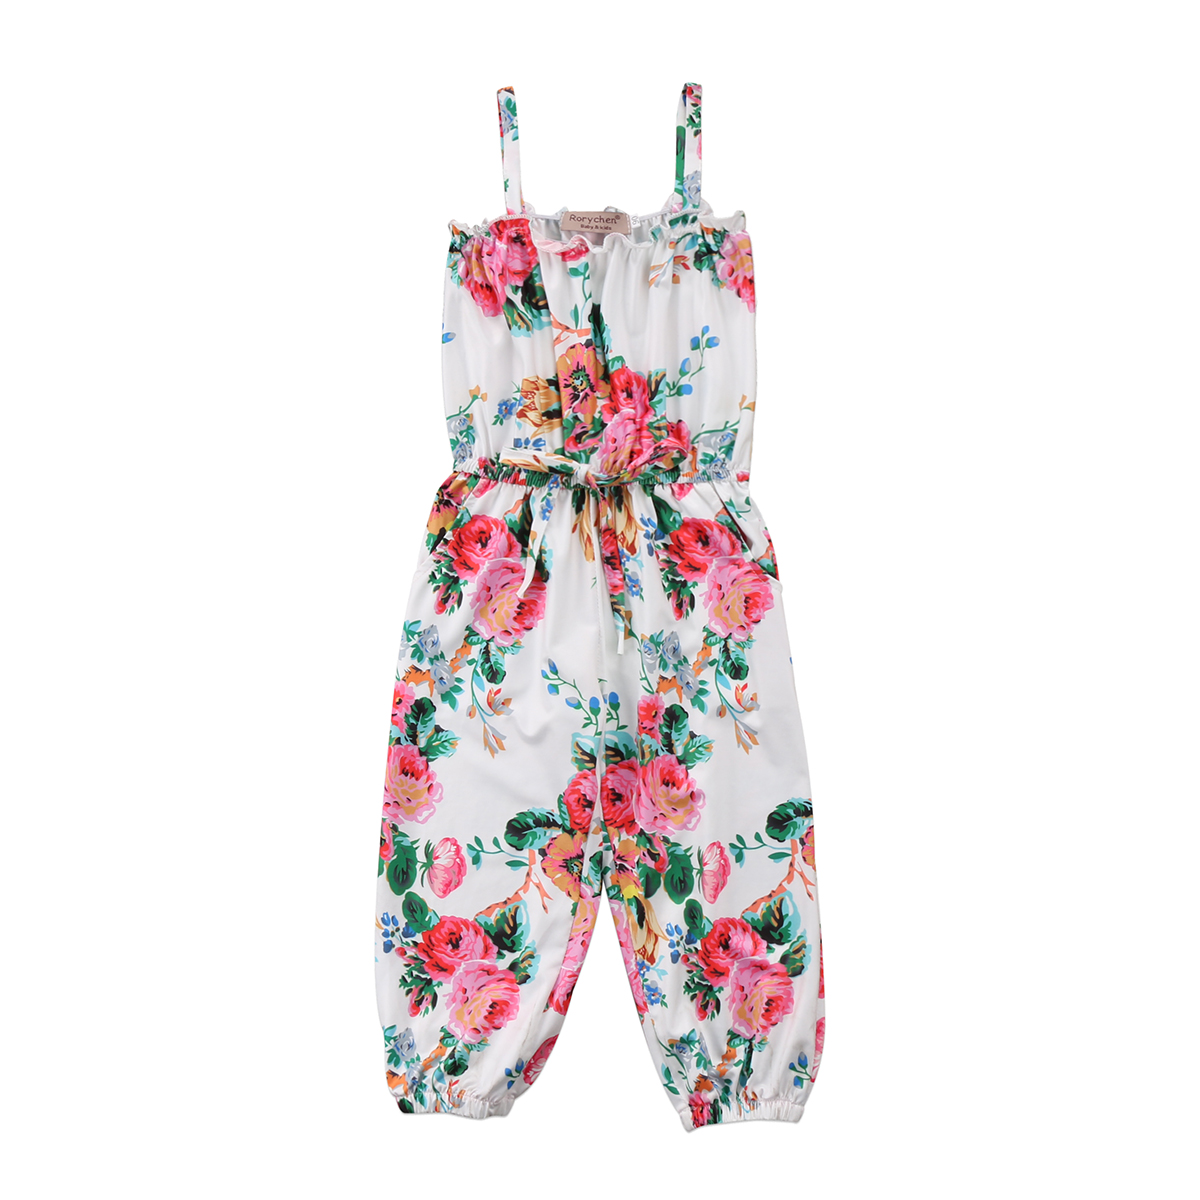 Cute Toddler Kids Girls Floral Overall Romper Halter Sleeve Casual Jumpsuit Outfit Clothes Summer New 2-7T